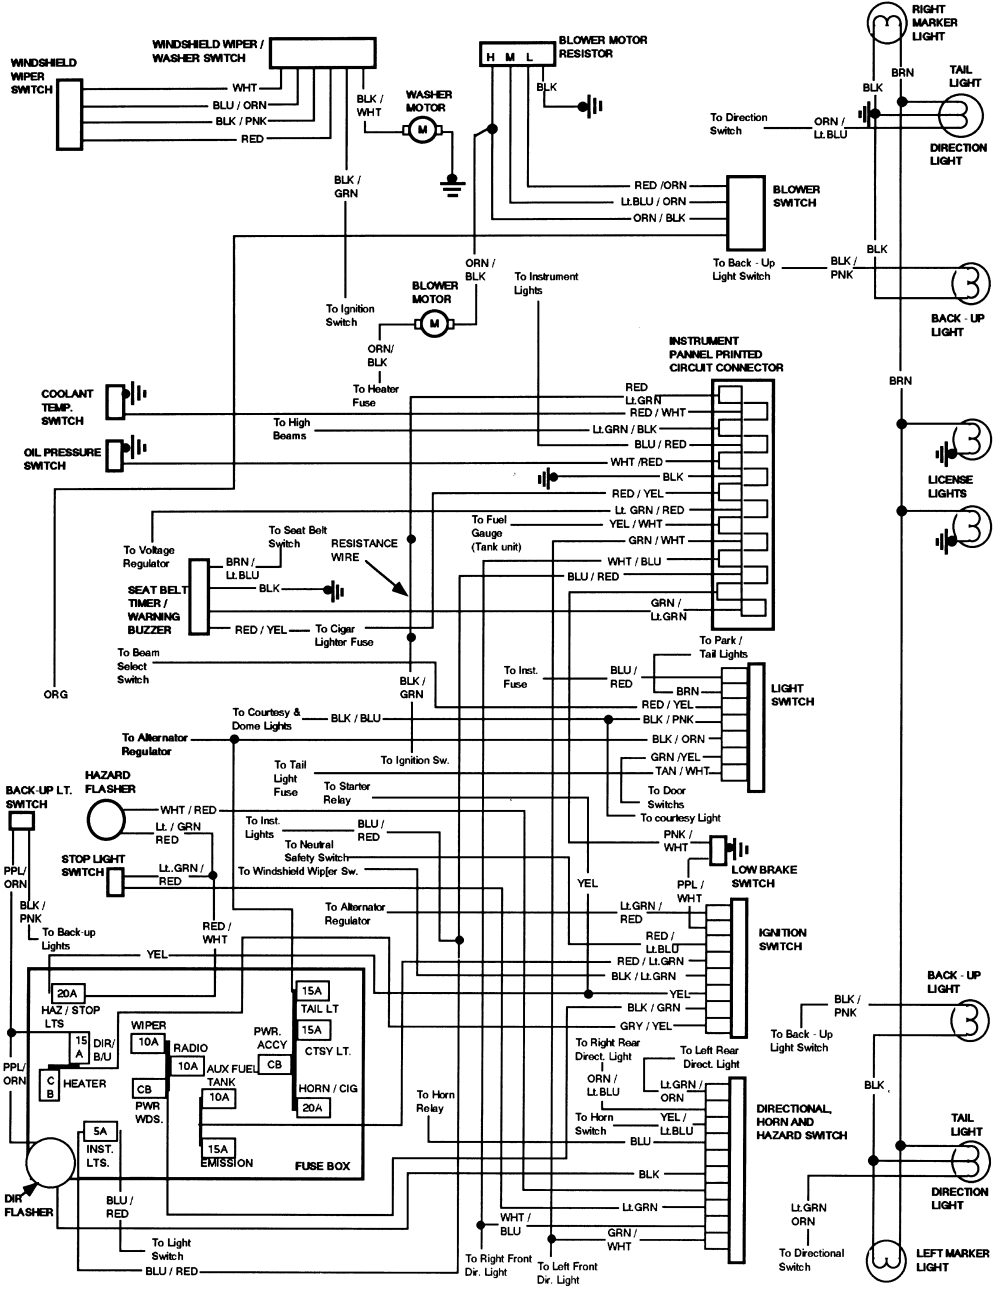 93 C1500 Ignition Wiring Diagram Free Picture